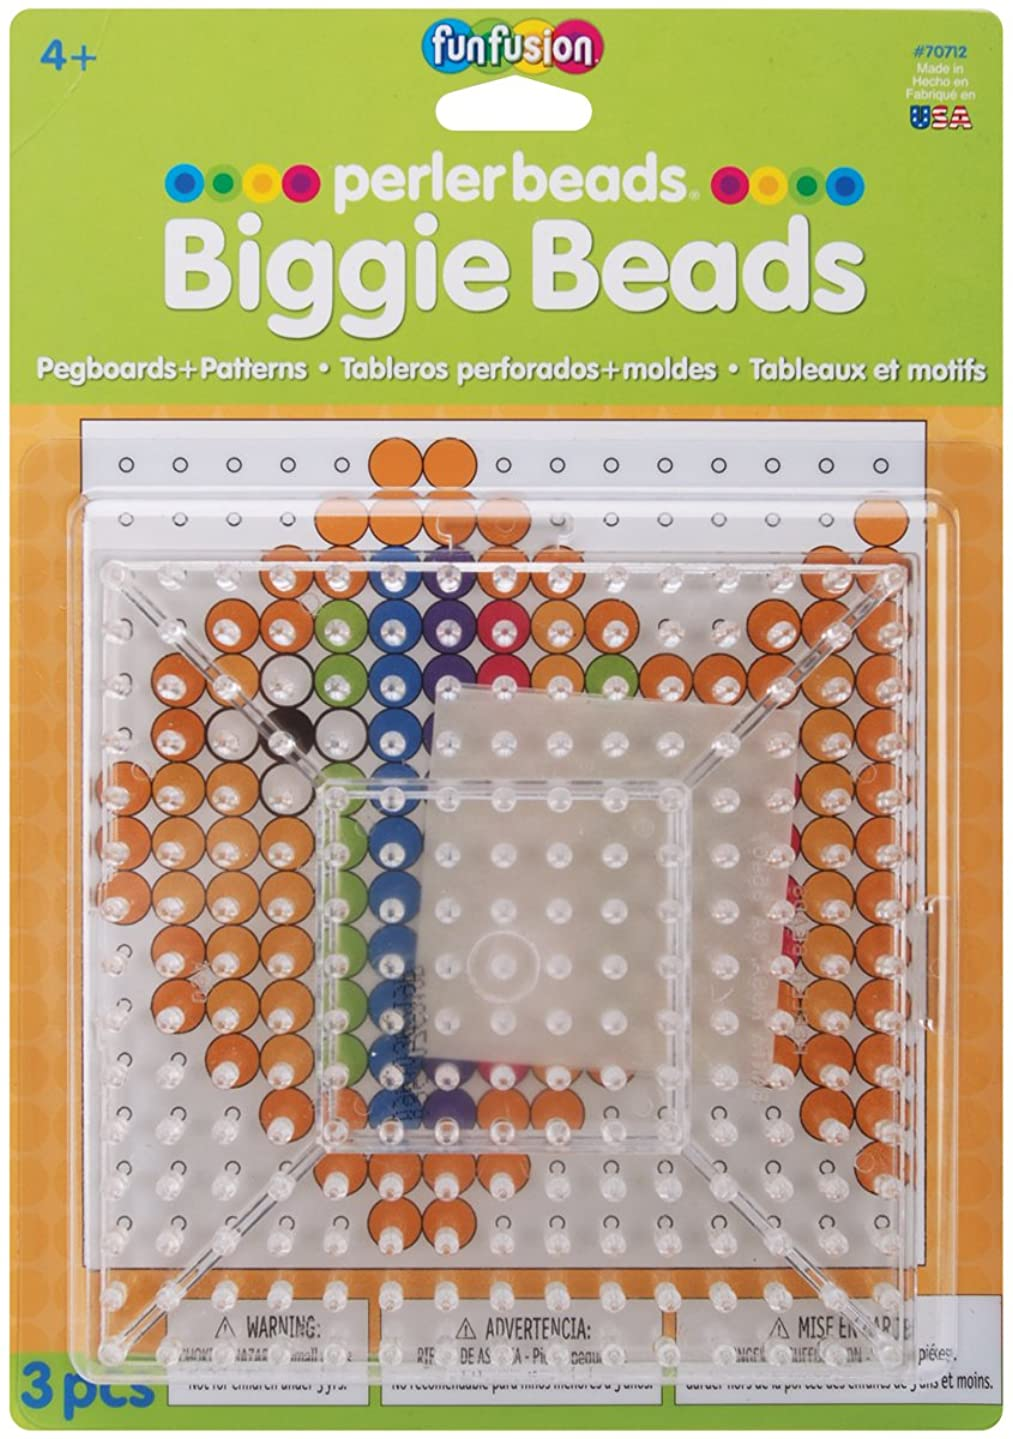 Perler Beads Biggie Beads Pegboards for Kids Crafts, 3 pcs